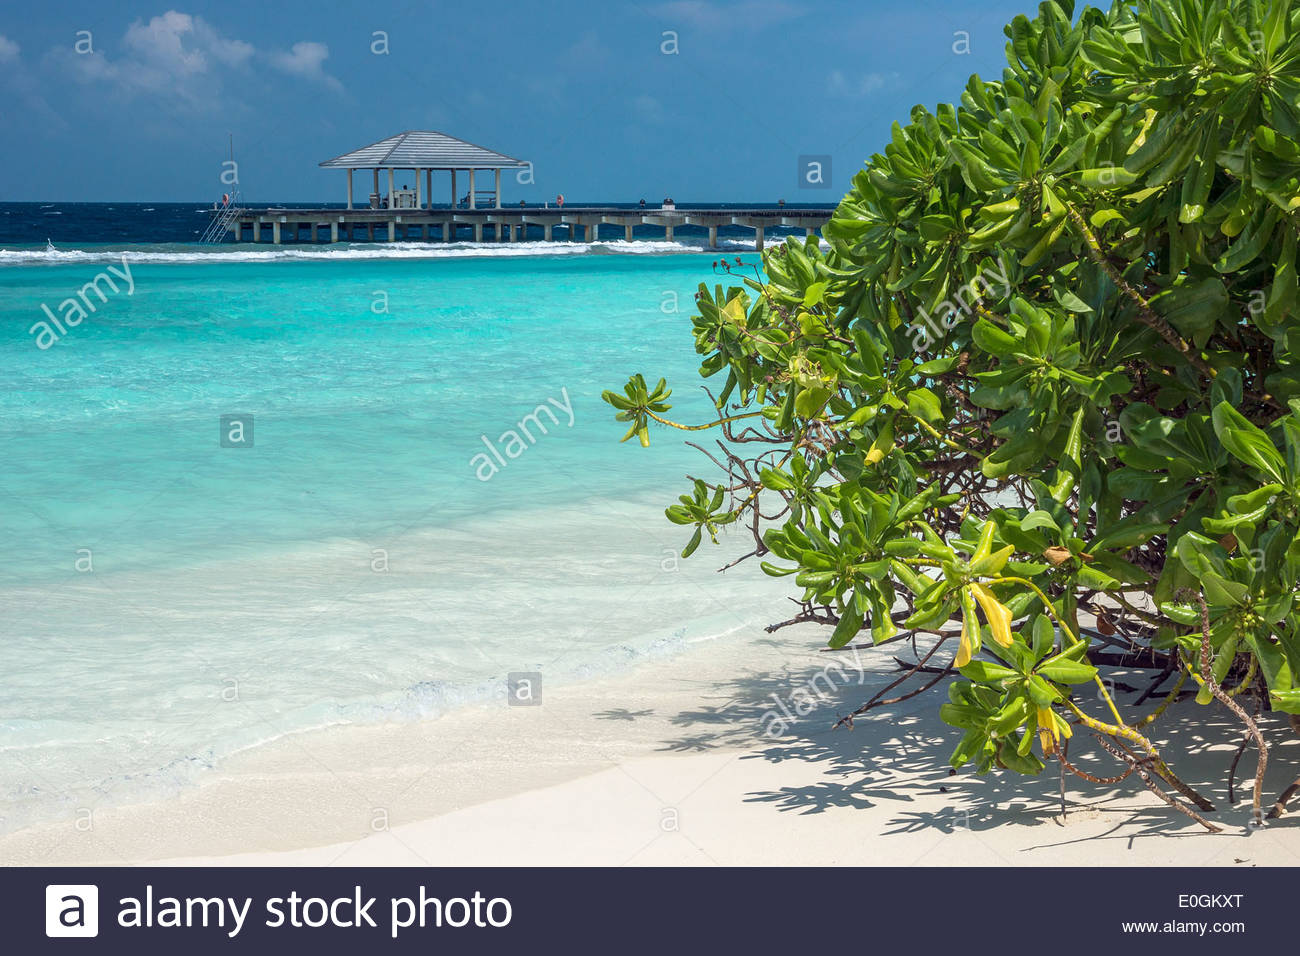 Maldives : beach, lagoon and jetty (pier) of Royal Island resort and spa on Horubadhoo island - Baa atoll - Stock Image